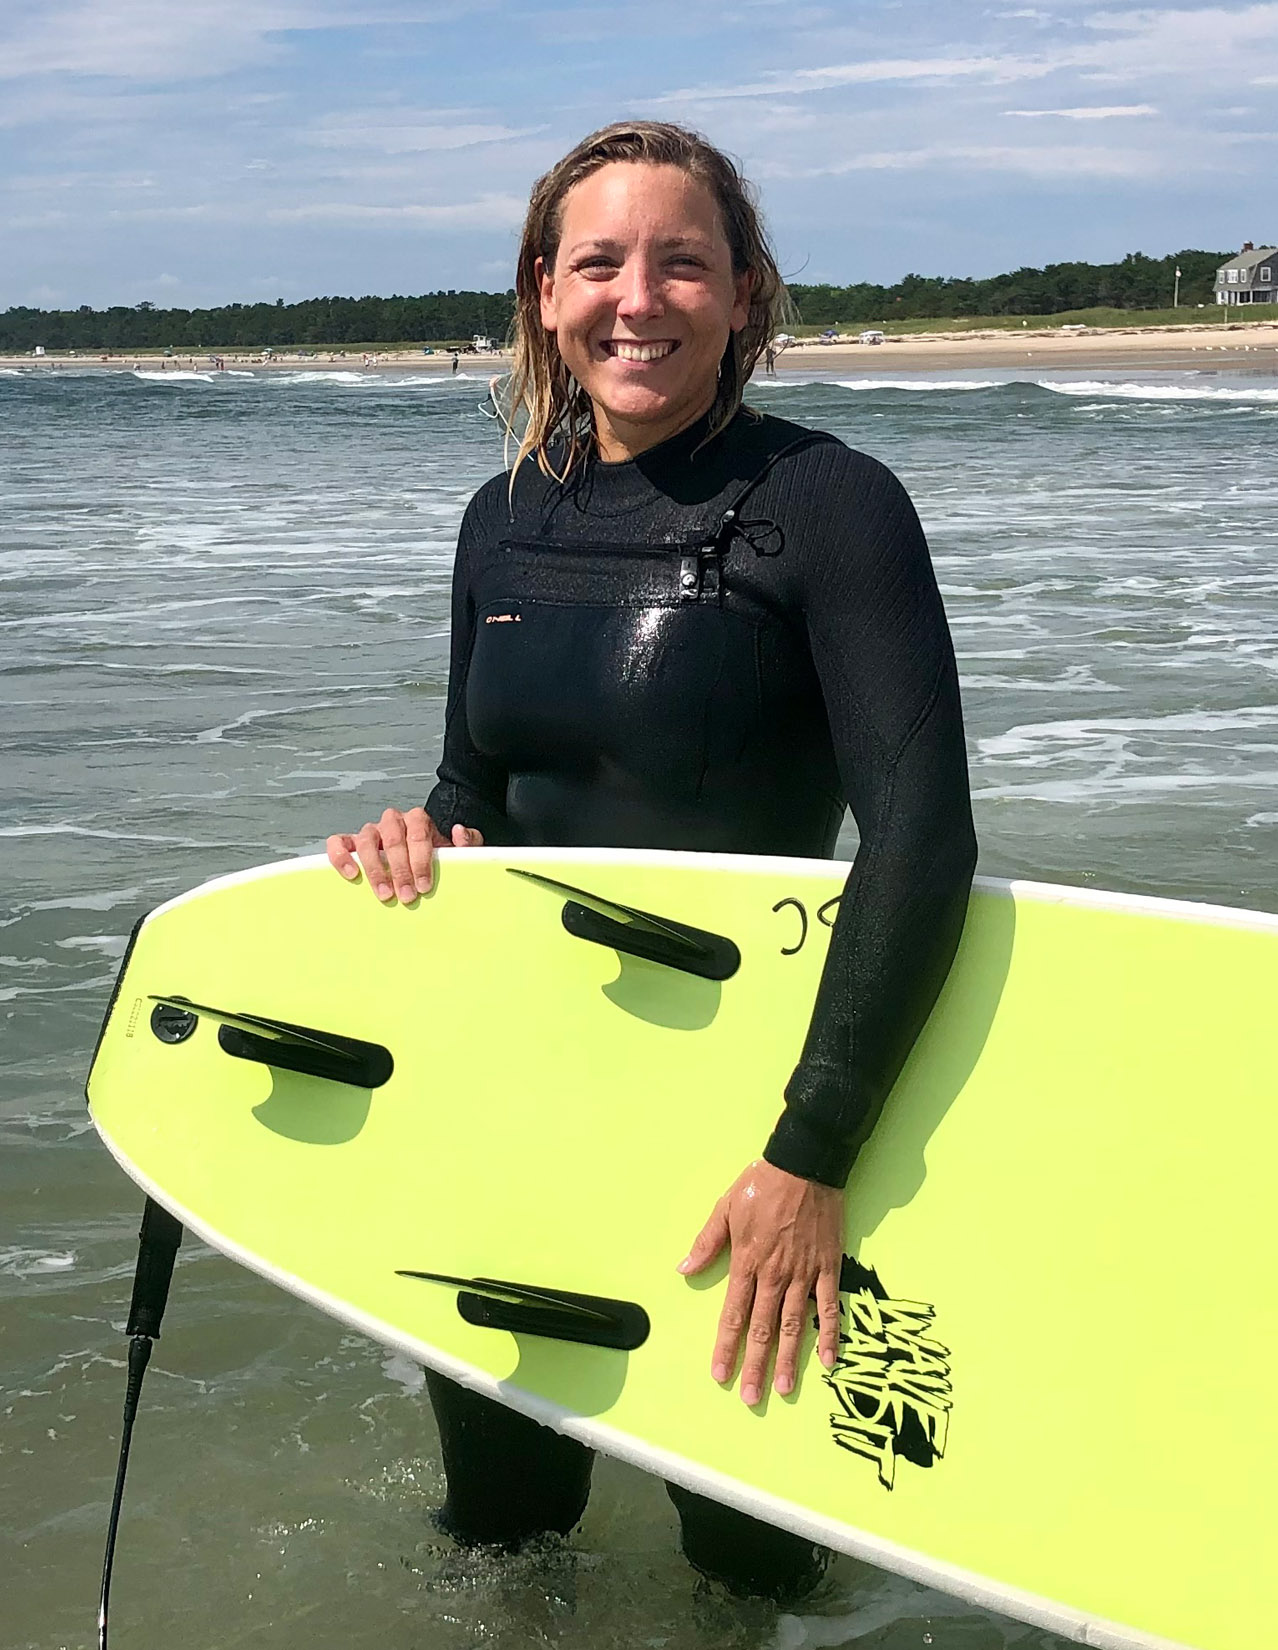 Christine Roberts of Surf Camp